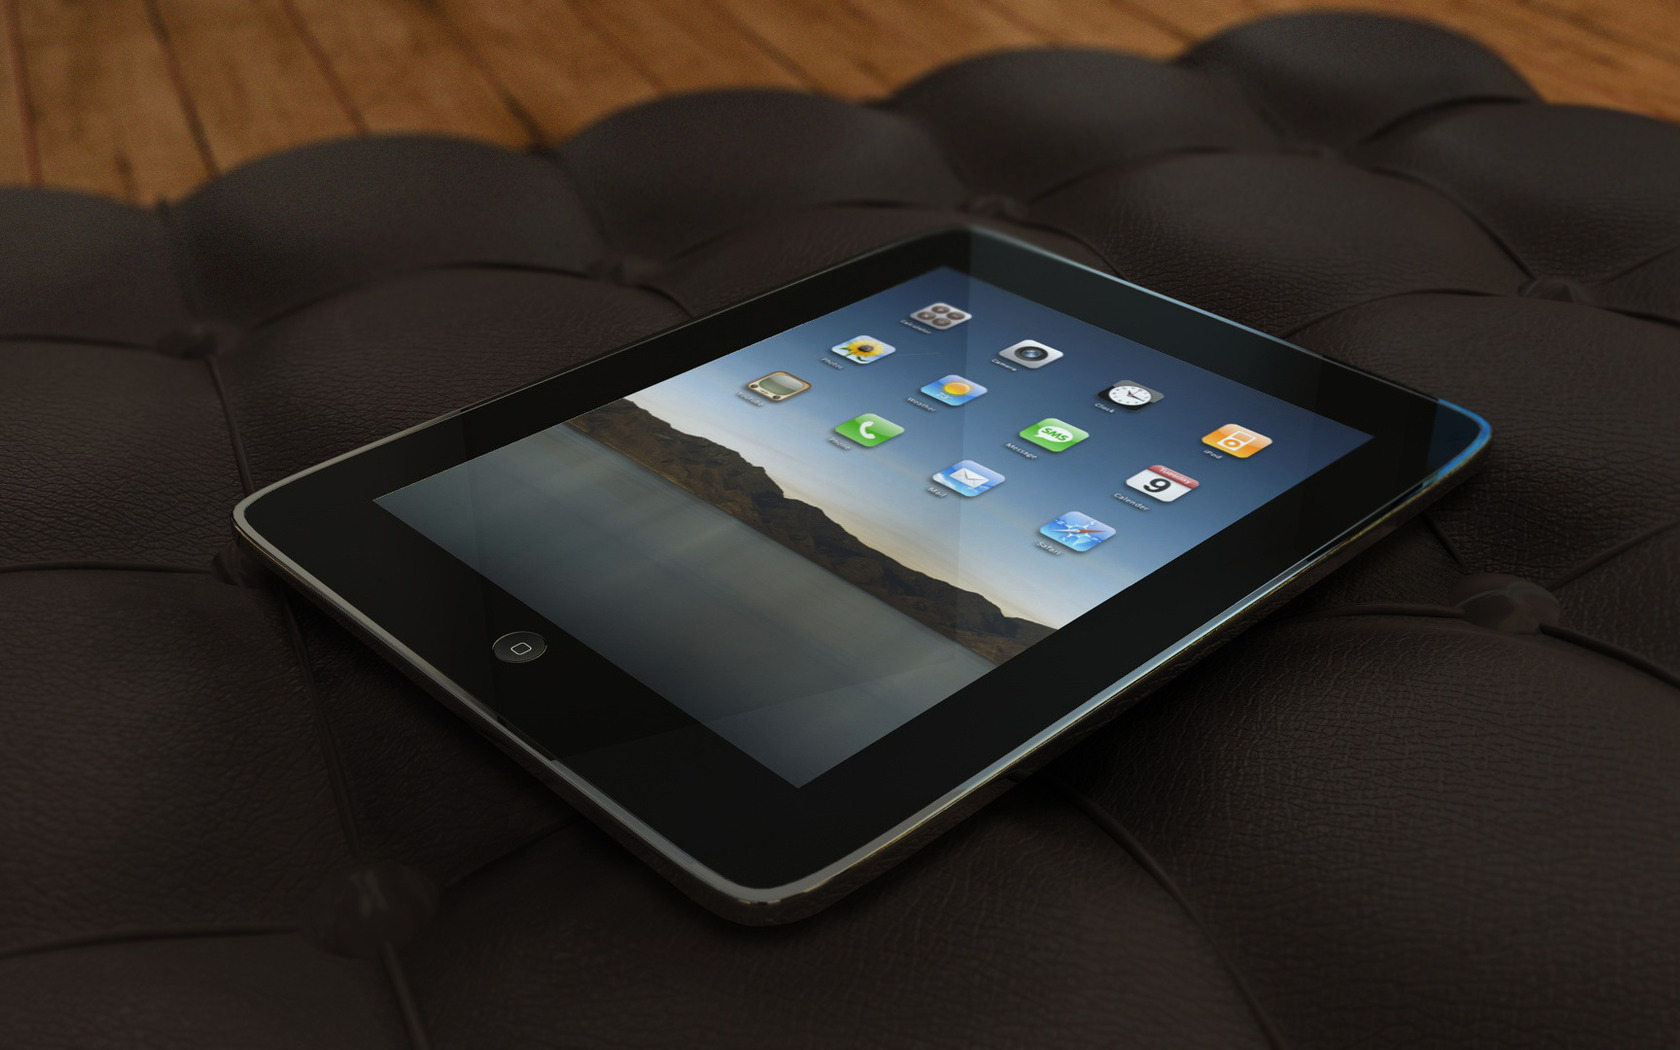 Vacation Gone Wrong: 7 Skin Rashes People Got Abroad Free photo downloads for ipad